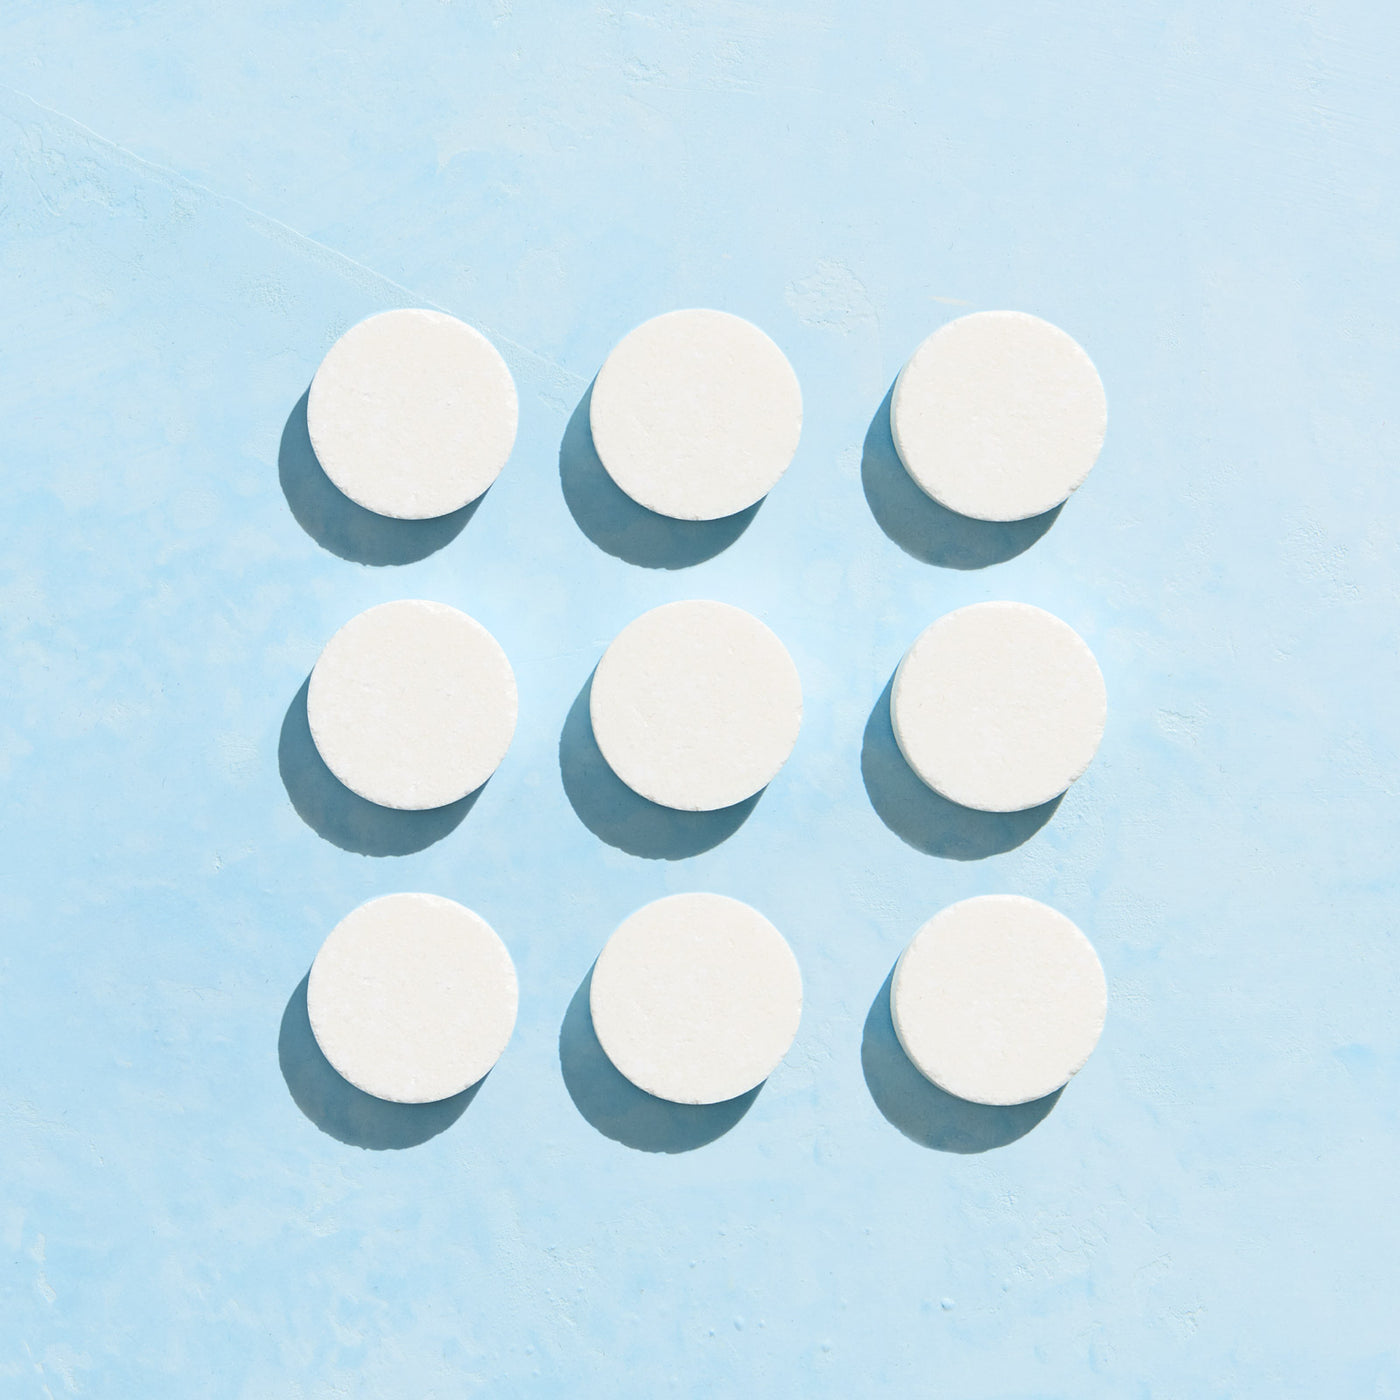 Nine unwrapped Foaming Hand Soap tablets on blue background